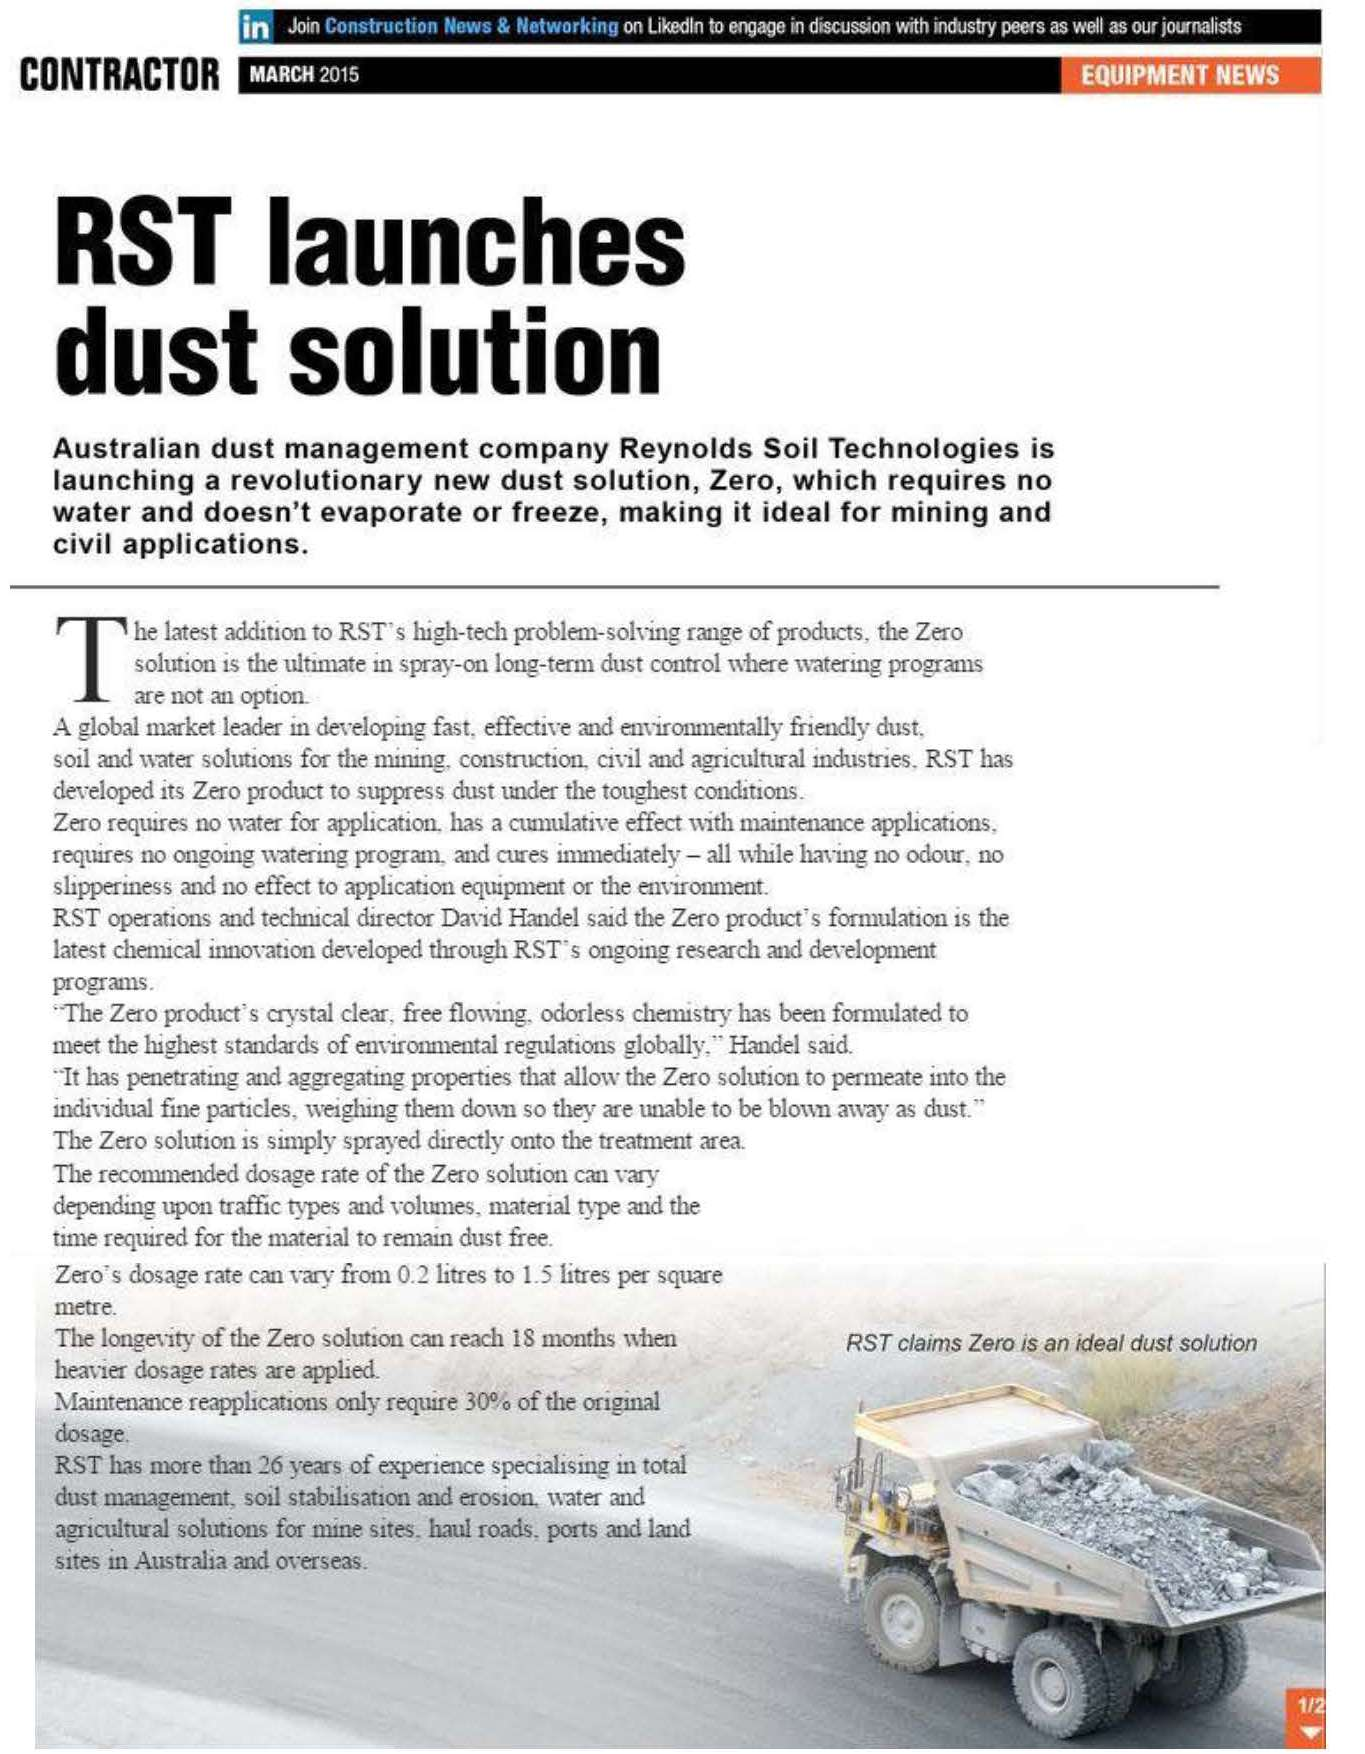 RST launches dust solution